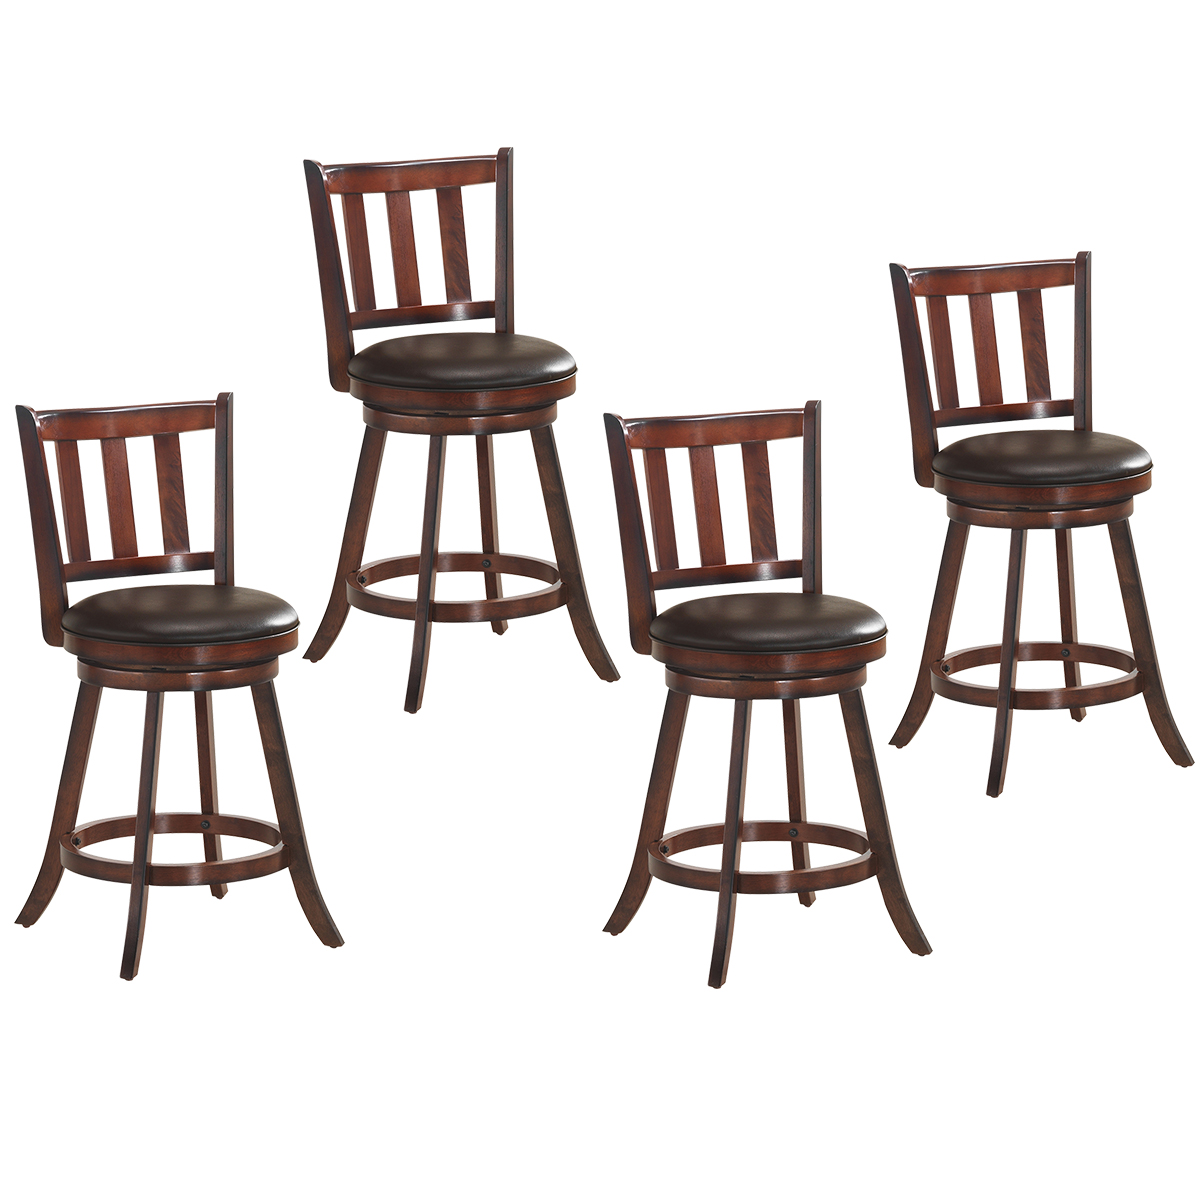 Costway Set Of 4 25'' Swivel Bar Stool Leather Padded Dining Kitchen Pub Bistro Chair